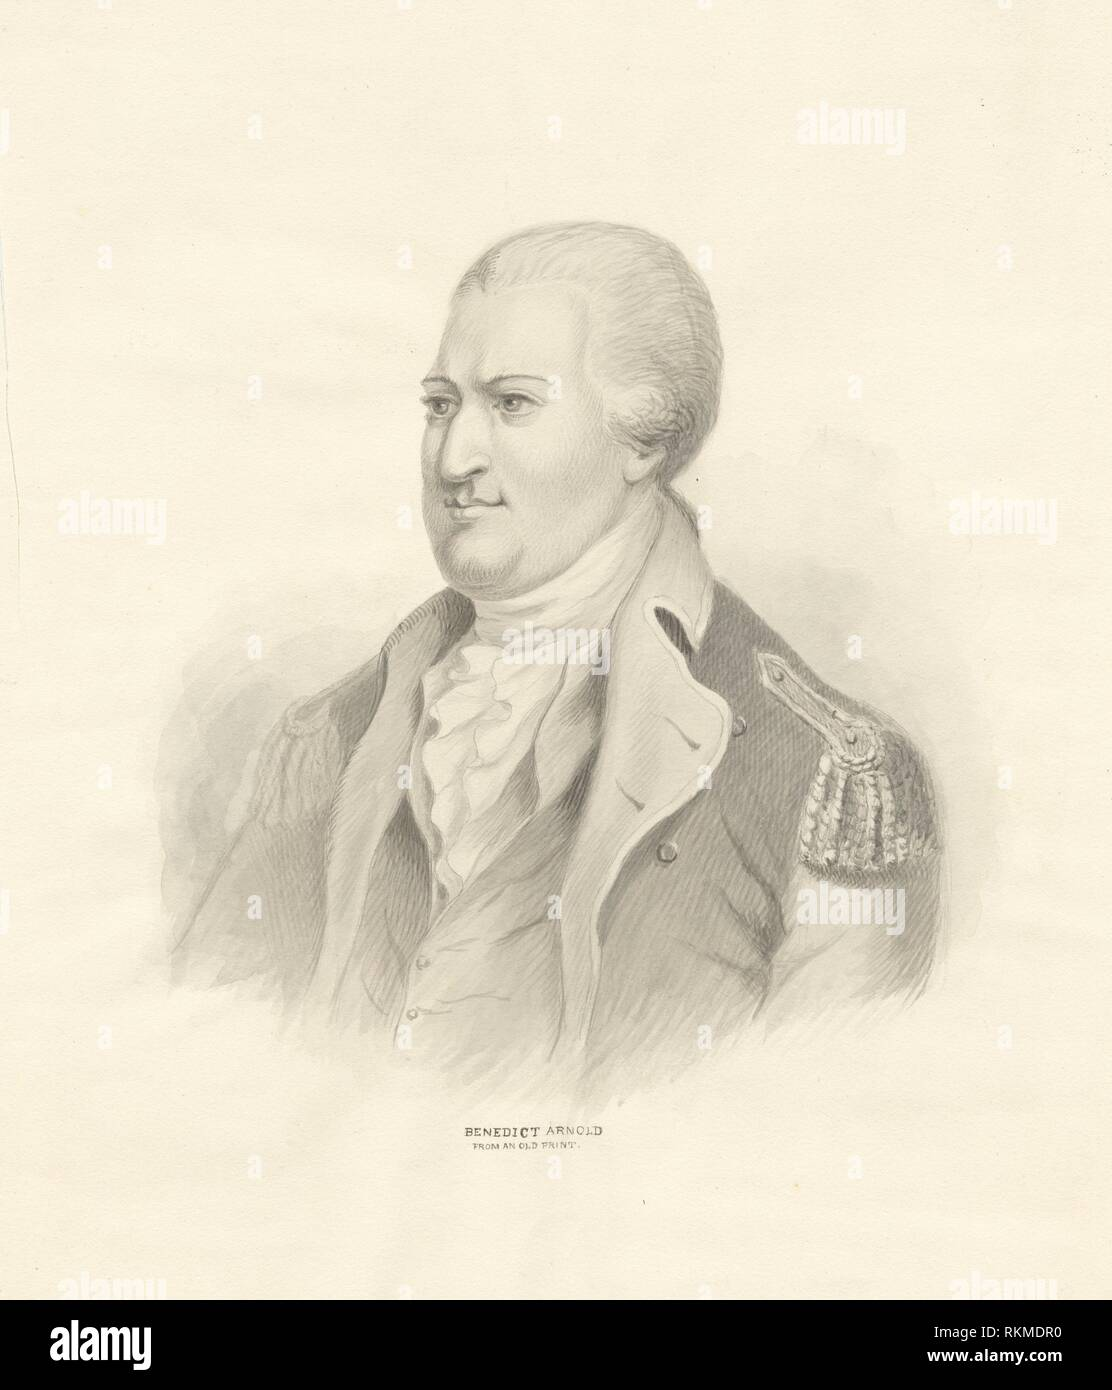 Benedict Arnold from an old print. Emmet Collection of Manuscripts Etc. Relating to American History. The generals of the American Revolution. Volume - Stock Image